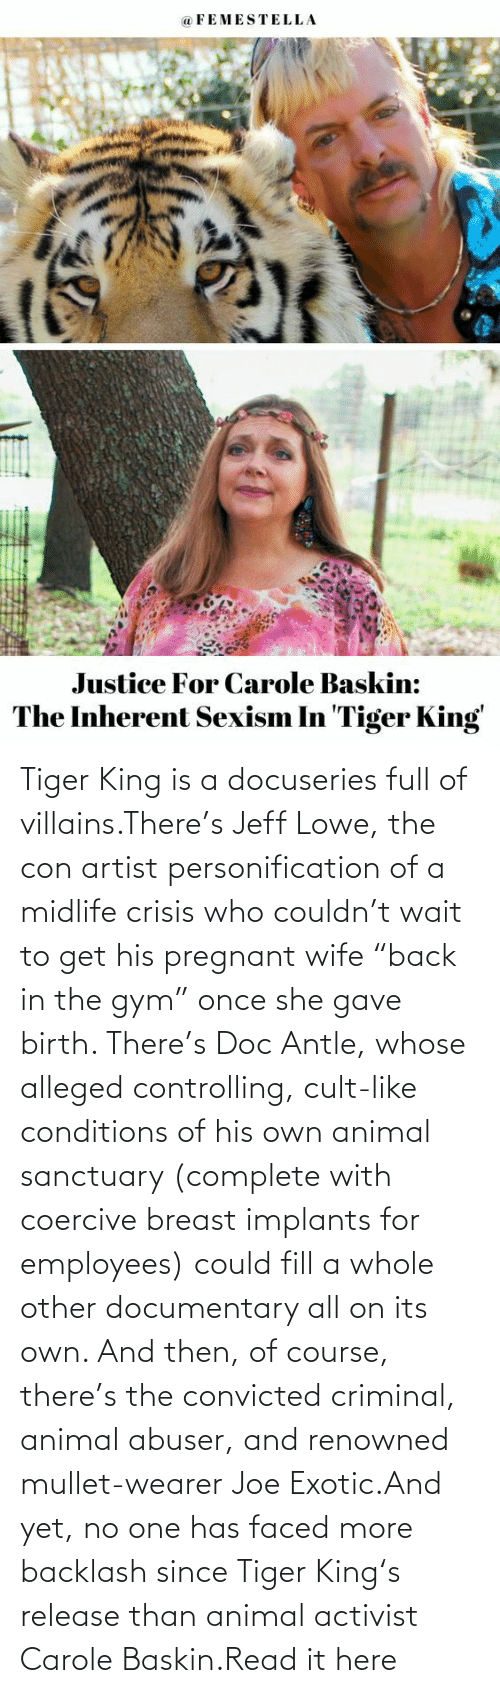 """pregnant: Tiger King is a docuseries full of villains.There's Jeff Lowe, the con artist personification of a midlife crisis who couldn't wait to get his pregnant wife """"back in the gym"""" once she gave birth. There's Doc Antle, whose alleged controlling, cult-like conditions of his own animal sanctuary (complete with coercive breast implants for employees) could fill a whole other documentary all on its own. And then, of course, there's the convicted criminal, animal abuser, and renowned mullet-wearer Joe Exotic.And yet, no one has faced more backlash since Tiger King's release than animal activist Carole Baskin.Read it here"""